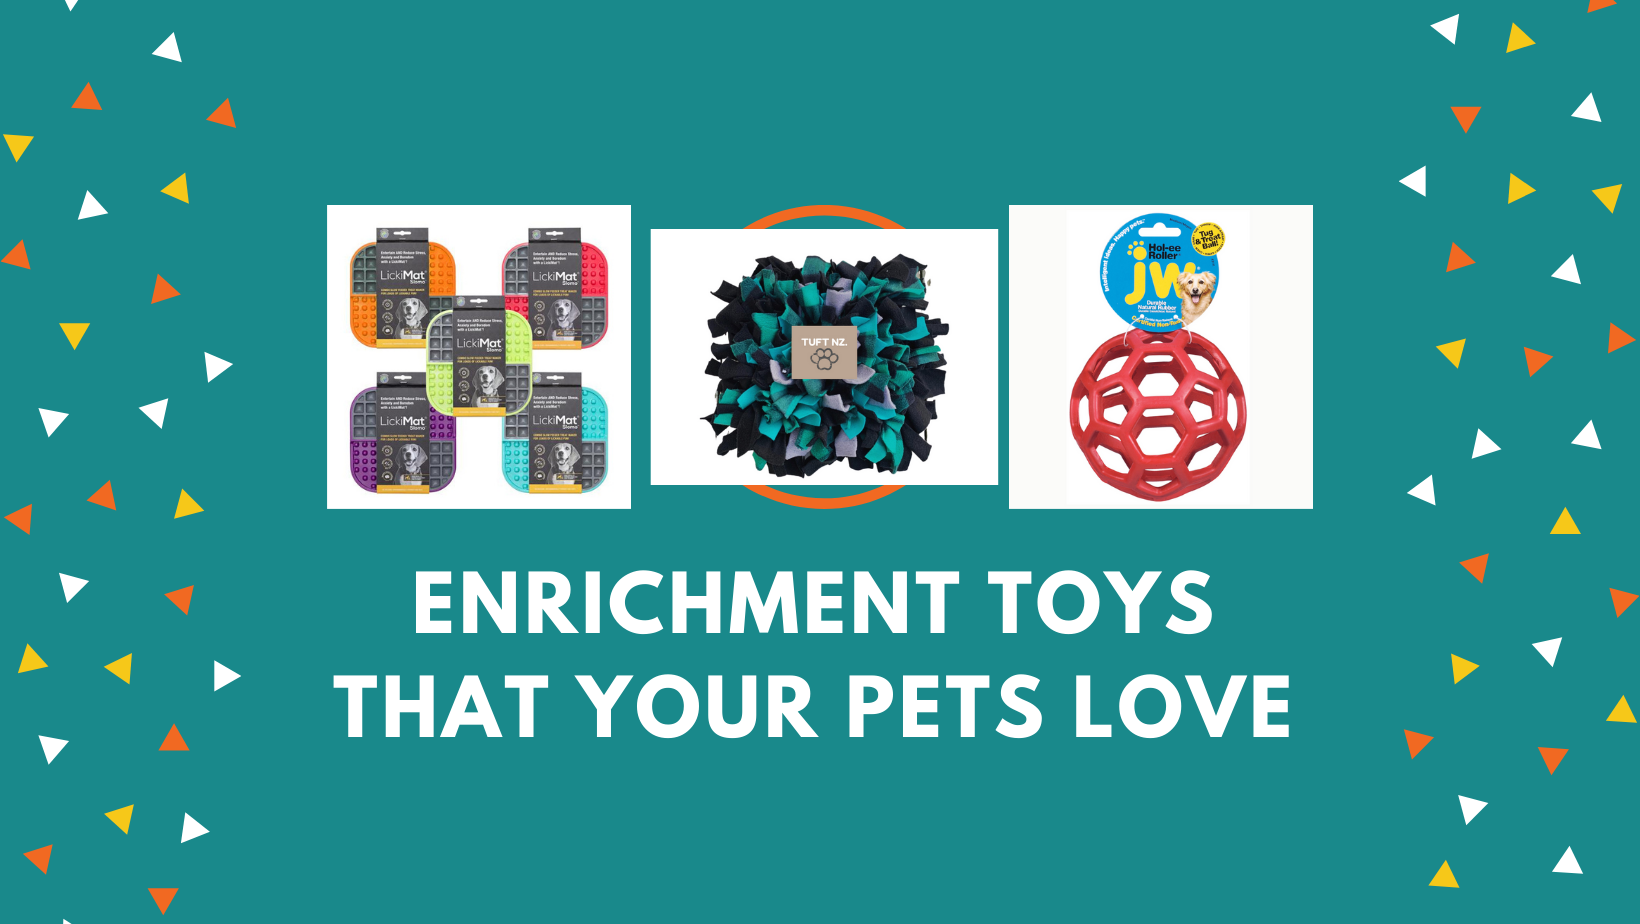 What Are Enrichment Toys?